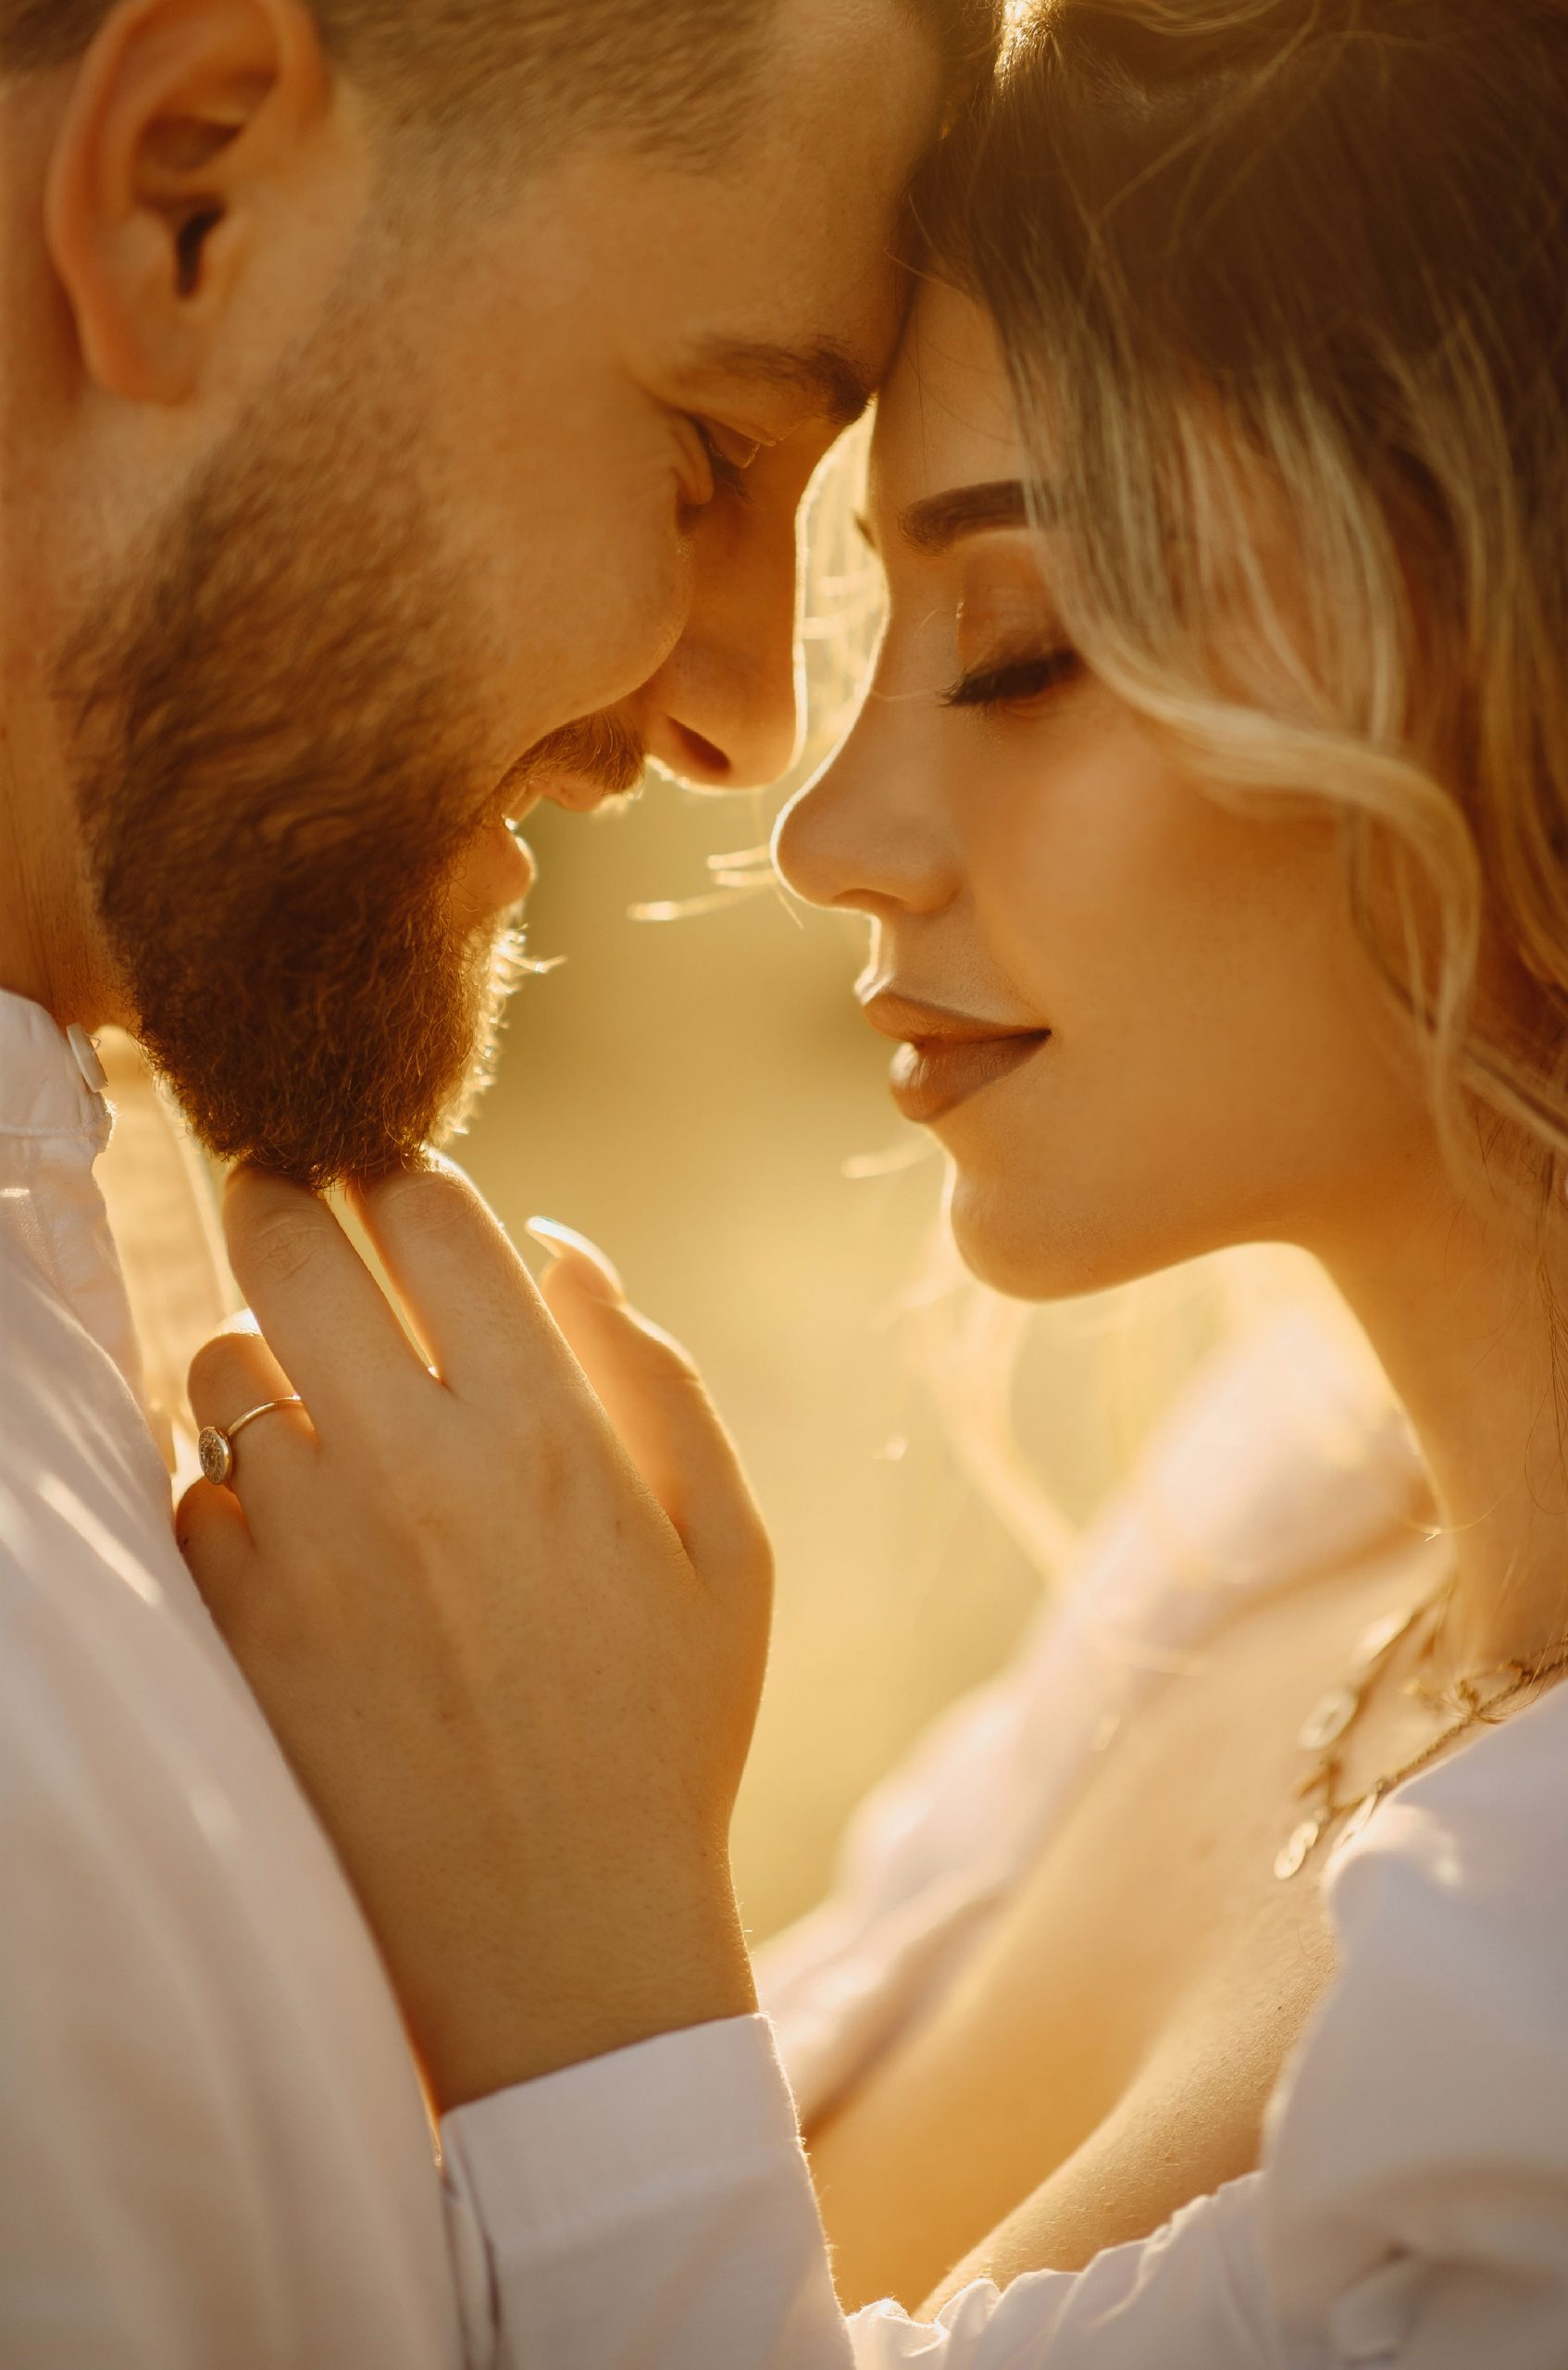 Couple's love photographed during golden hour